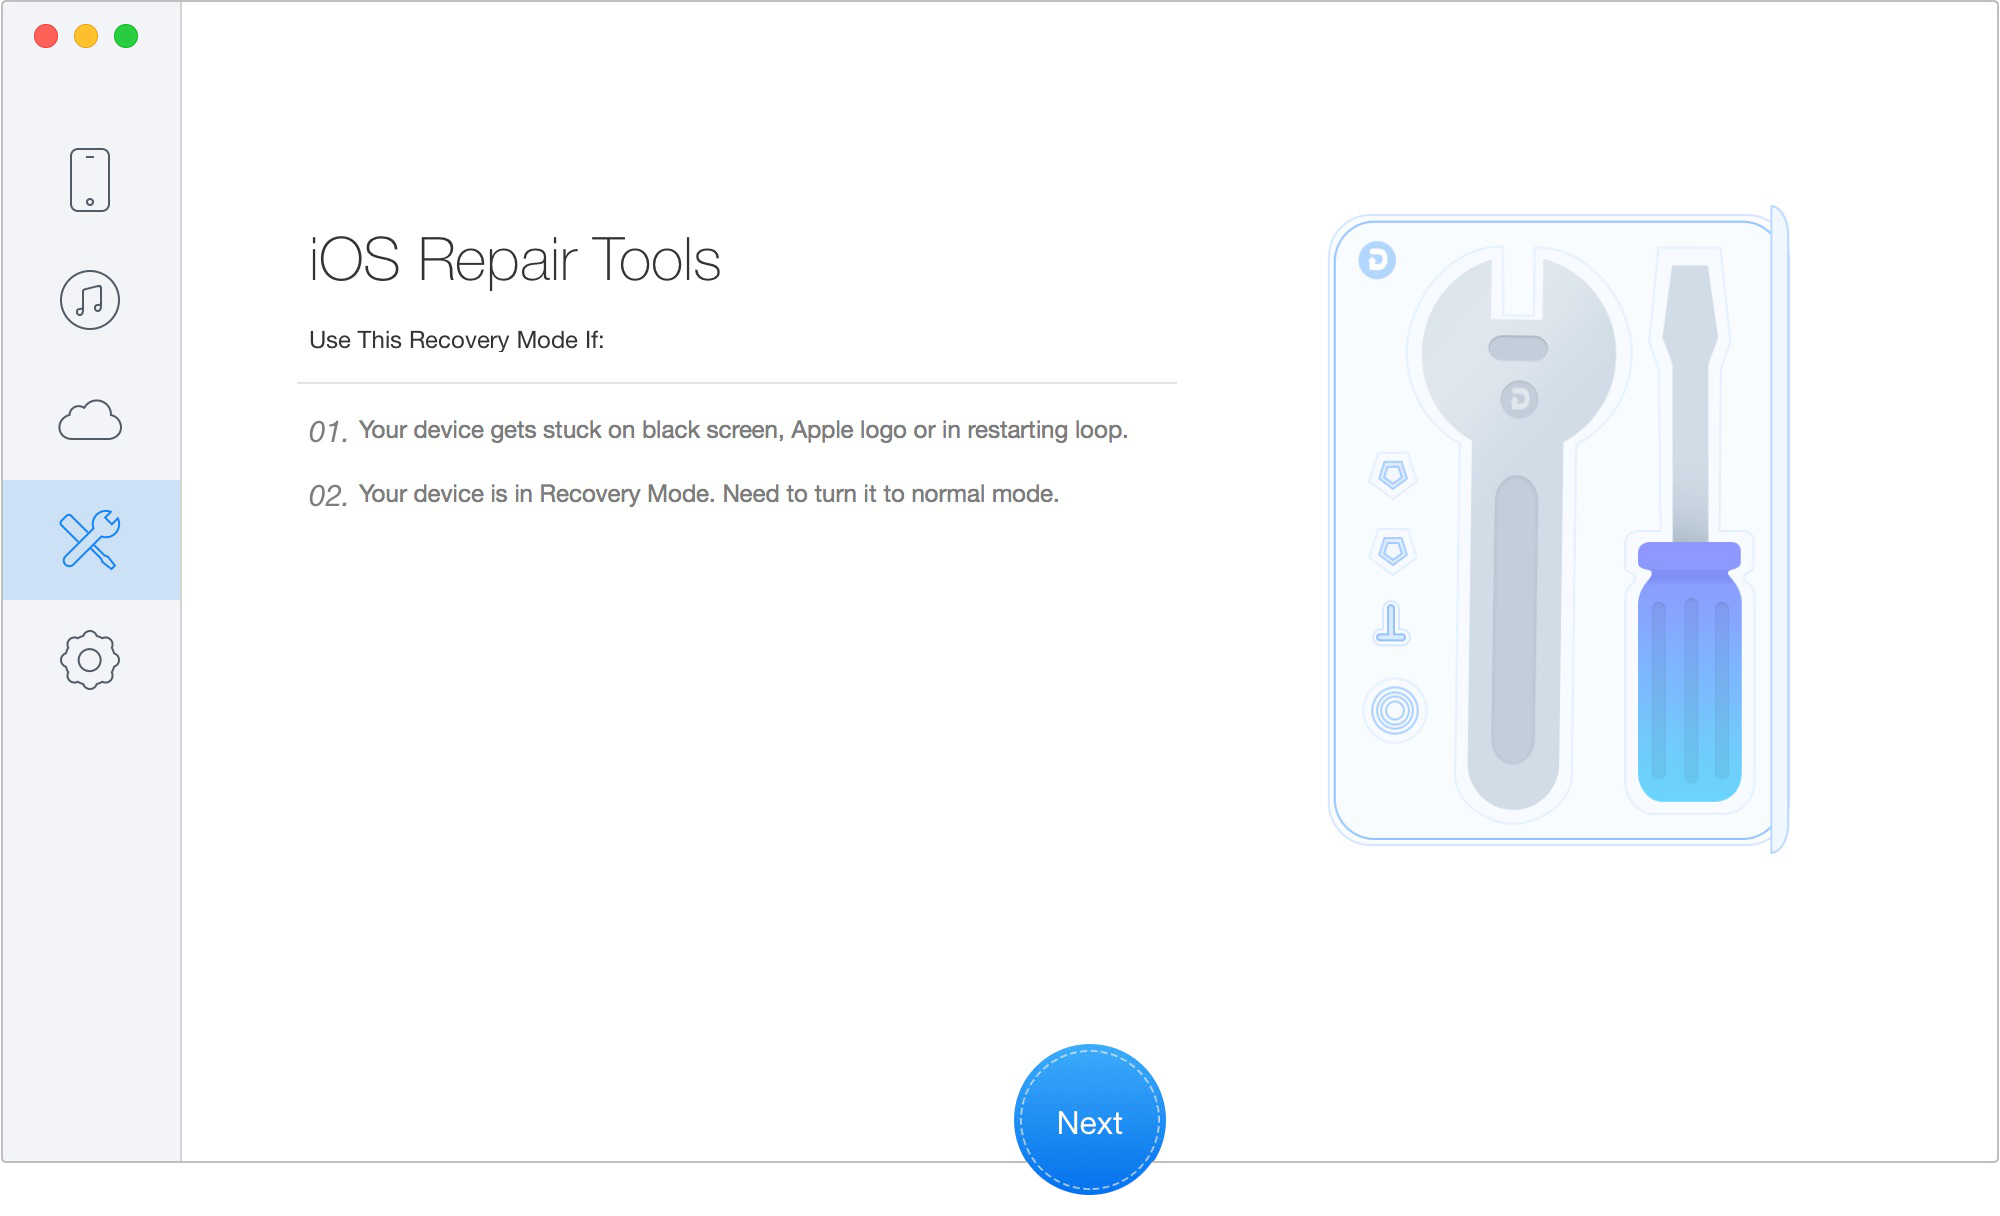 Download iphone repair os tool